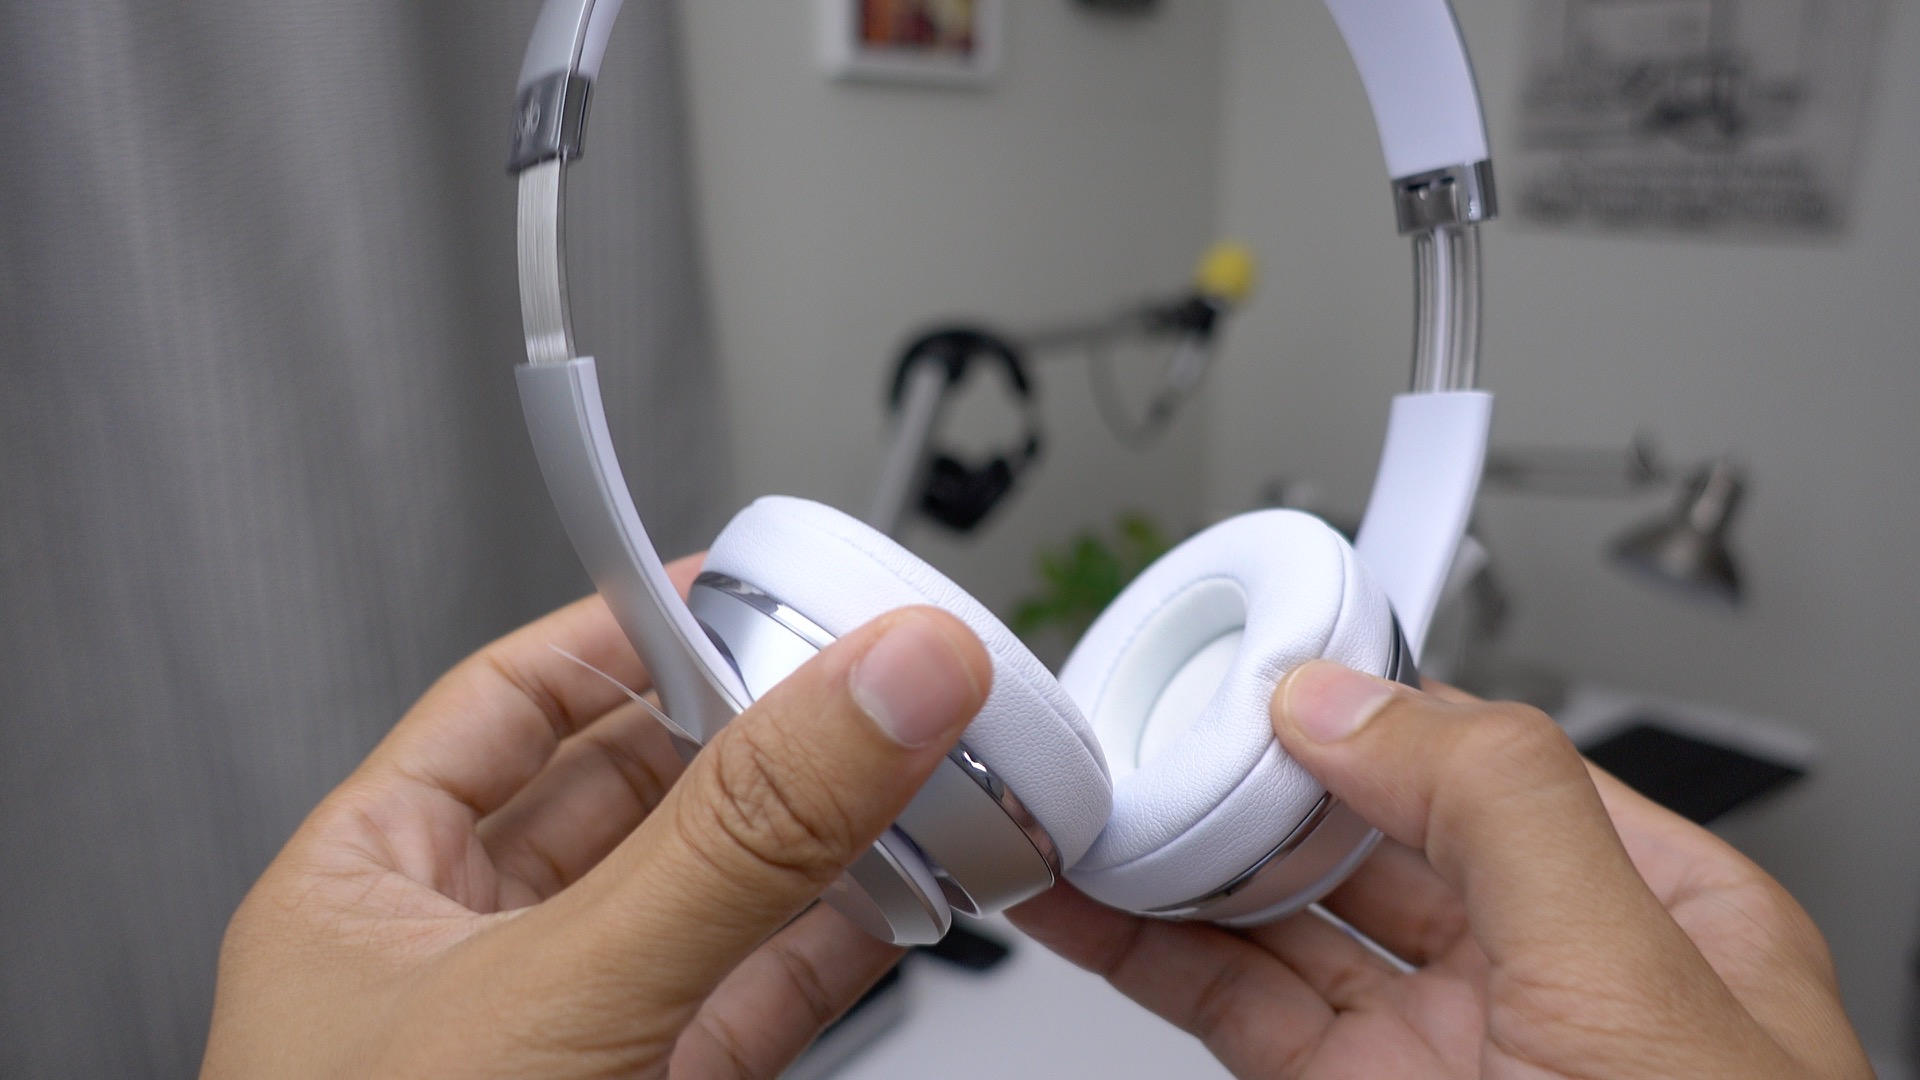 How to connect beats wireless earbuds to phone